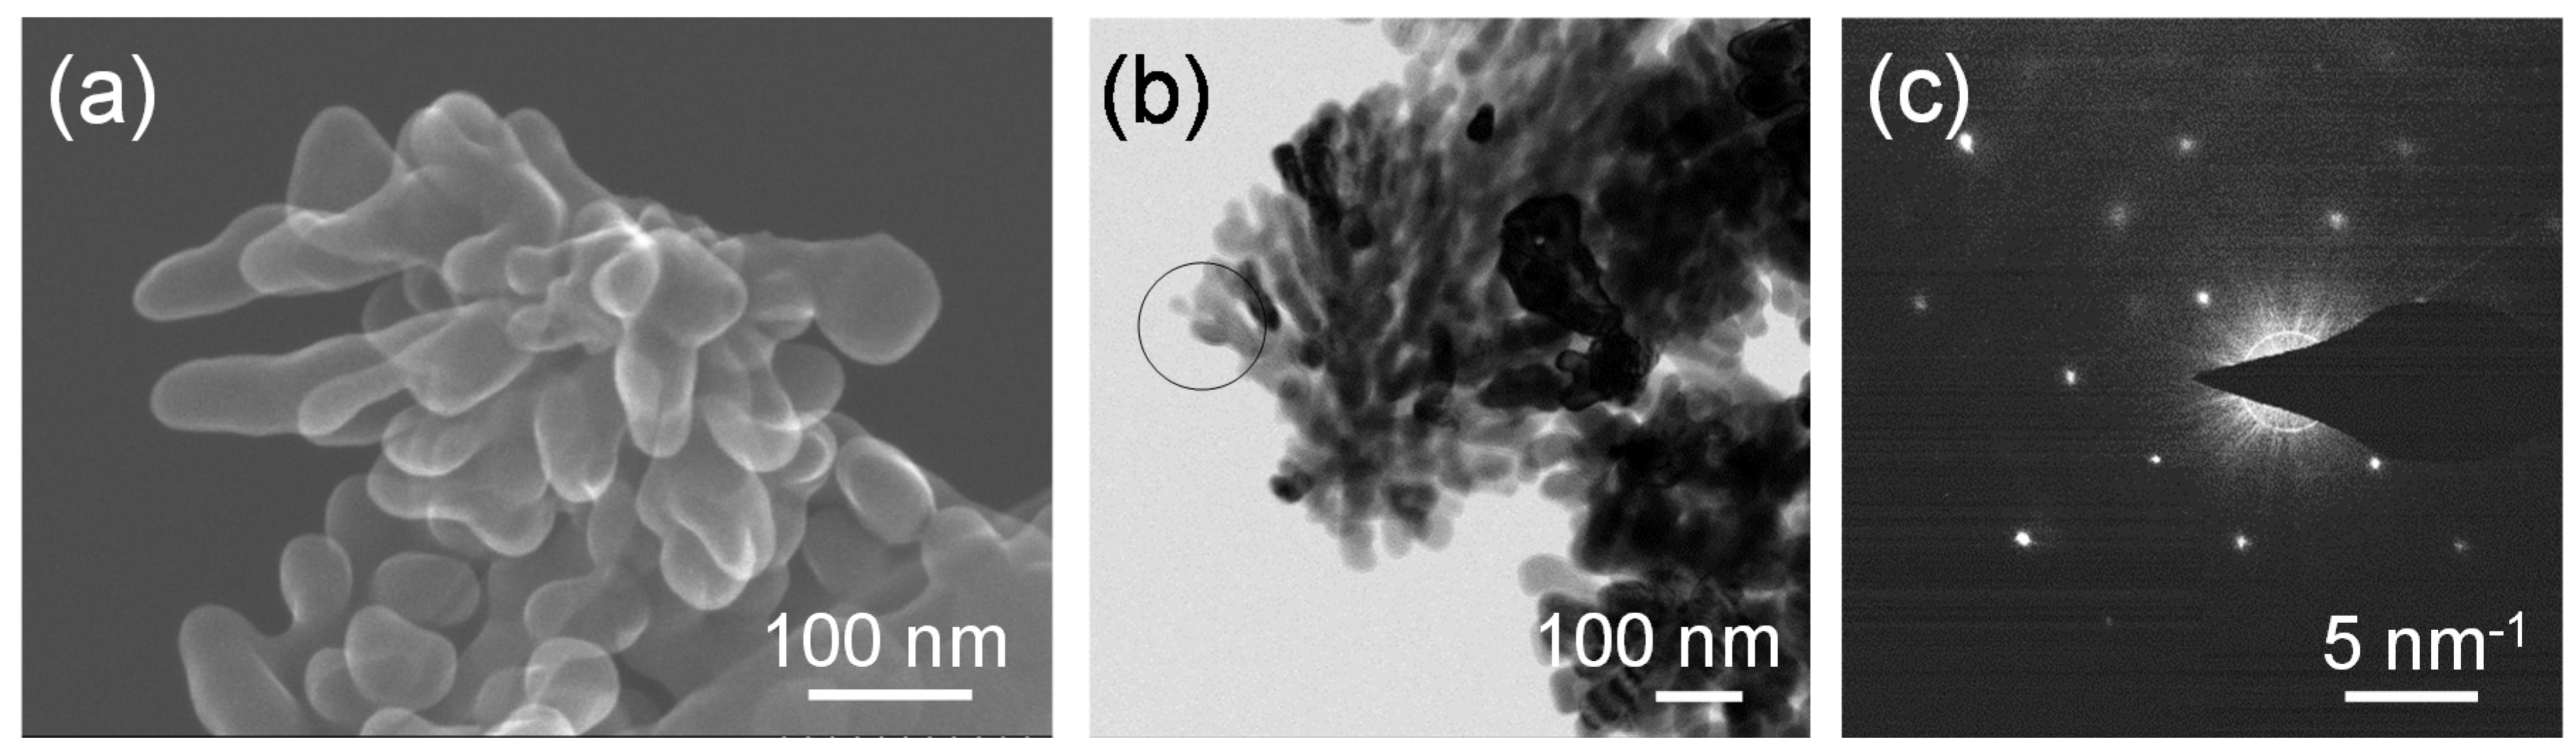 synthesis of strontitum hexaferrites nanoparticals Low-temperature hydrothermal synthesis of ultrafine strontium hexaferrite {low-temperature hydrothermal synthesis of ultrafine strontium hexaferrite nanoparticles},.